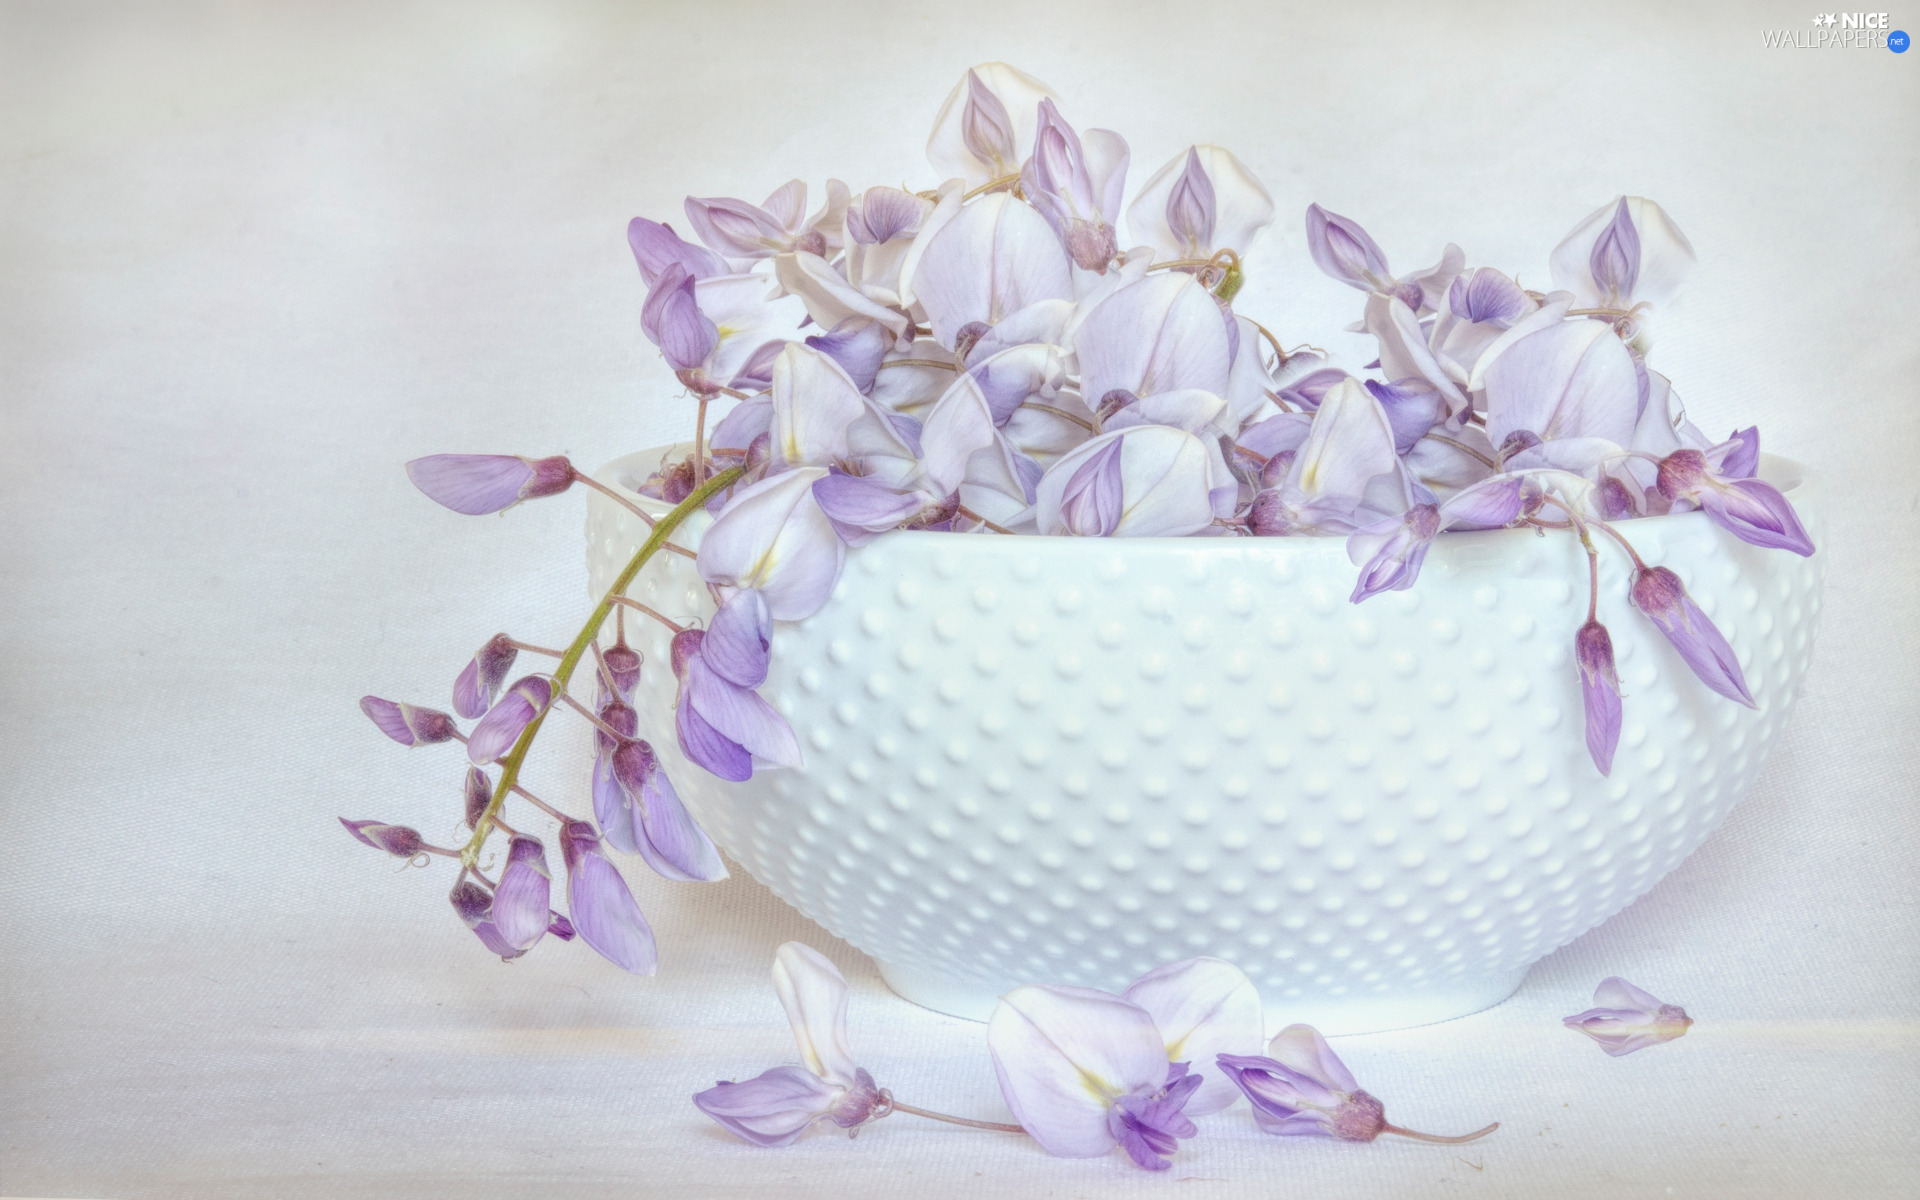 Flowers, vase, graphics, wistaria